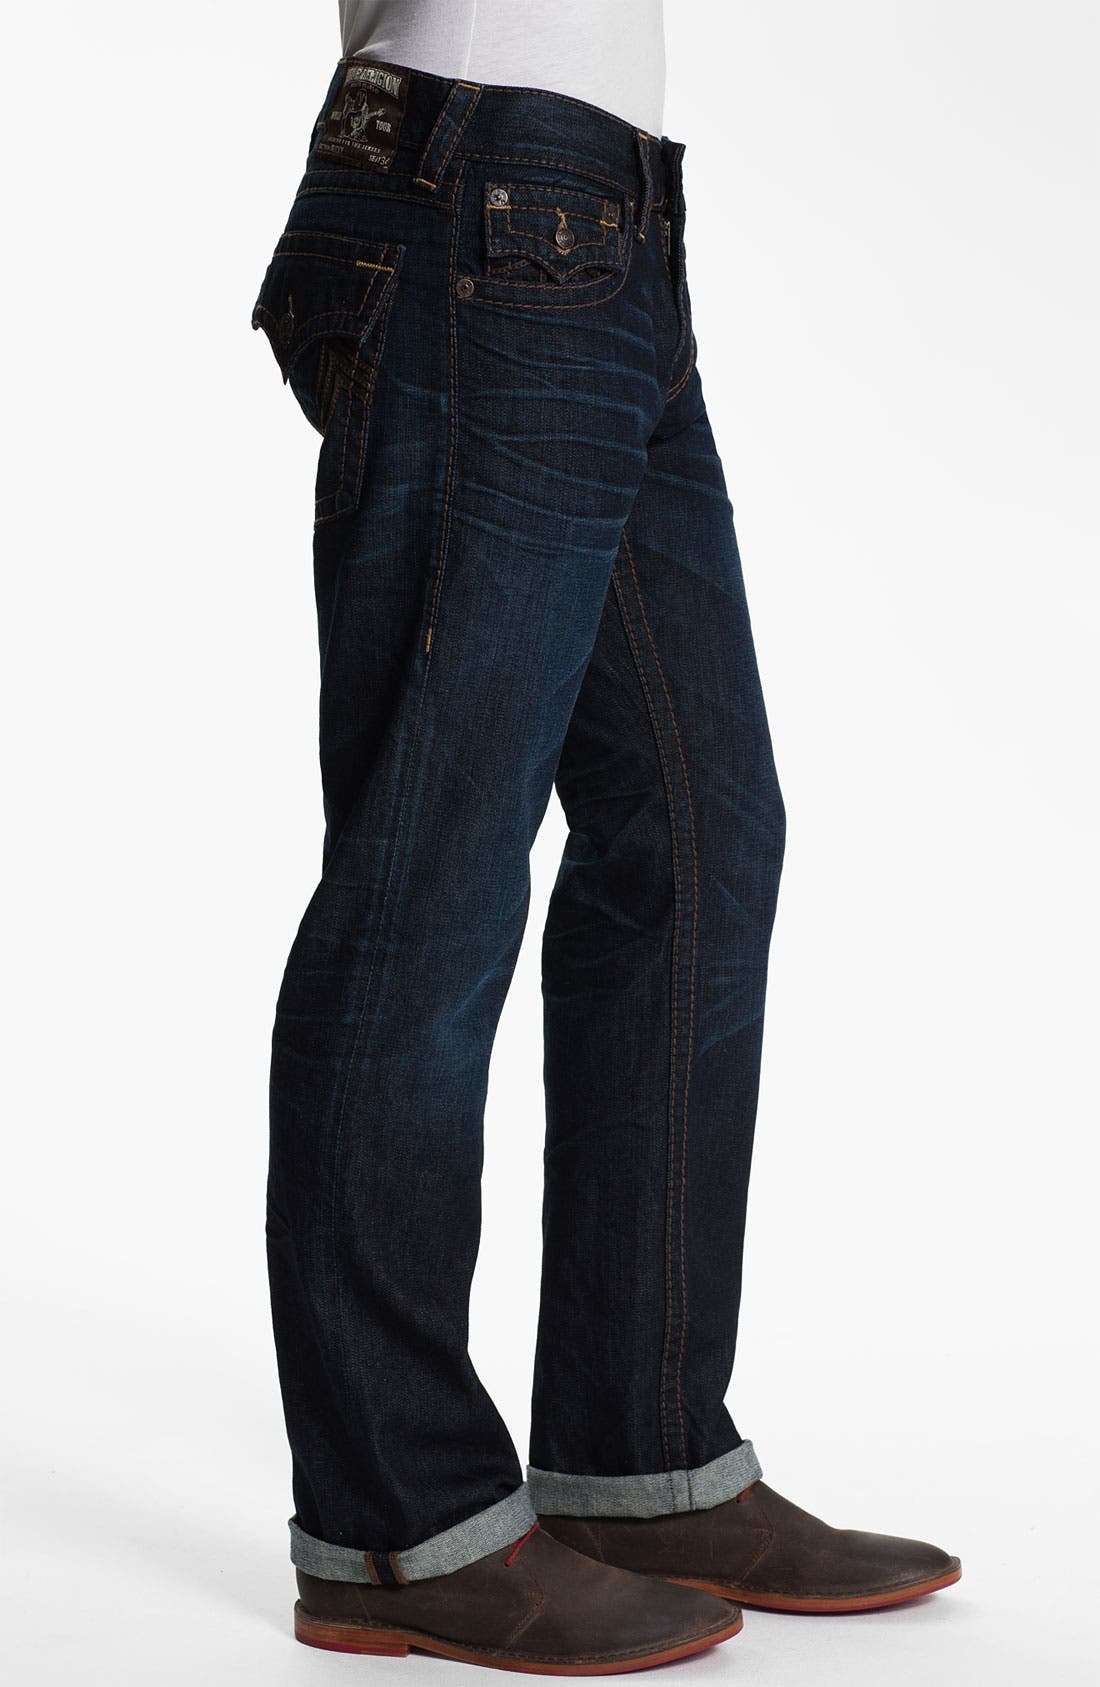 Alternate Image 3  - True Religion Brand Jeans 'Ricky' Straight Leg Jeans (Overland) (Online Exclusive)